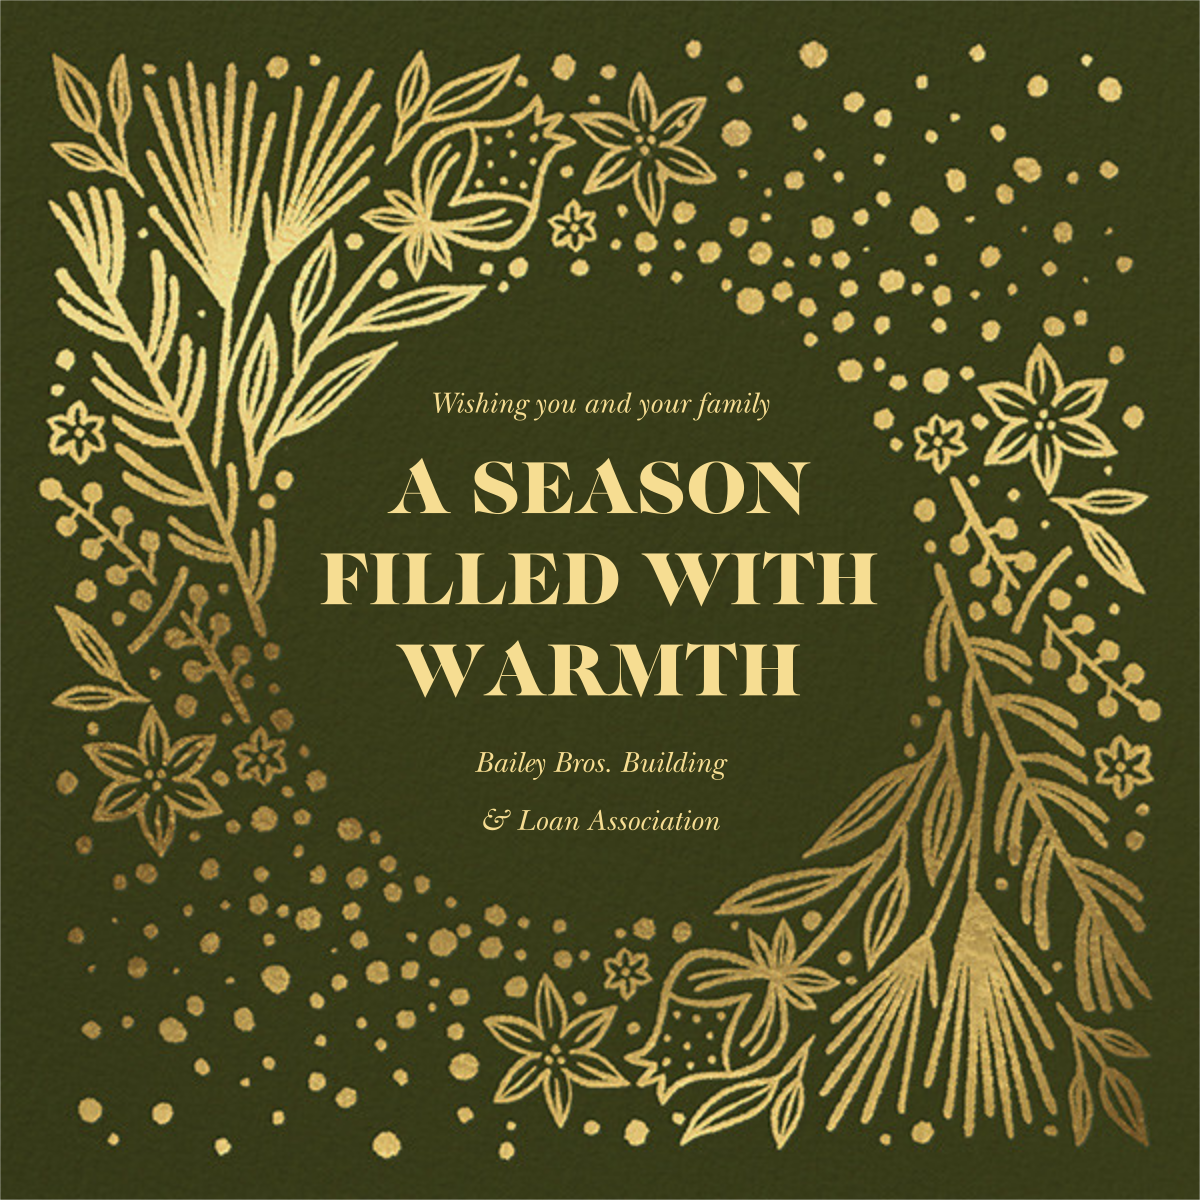 Wild Wild Winter - Paperless Post - Business holiday cards